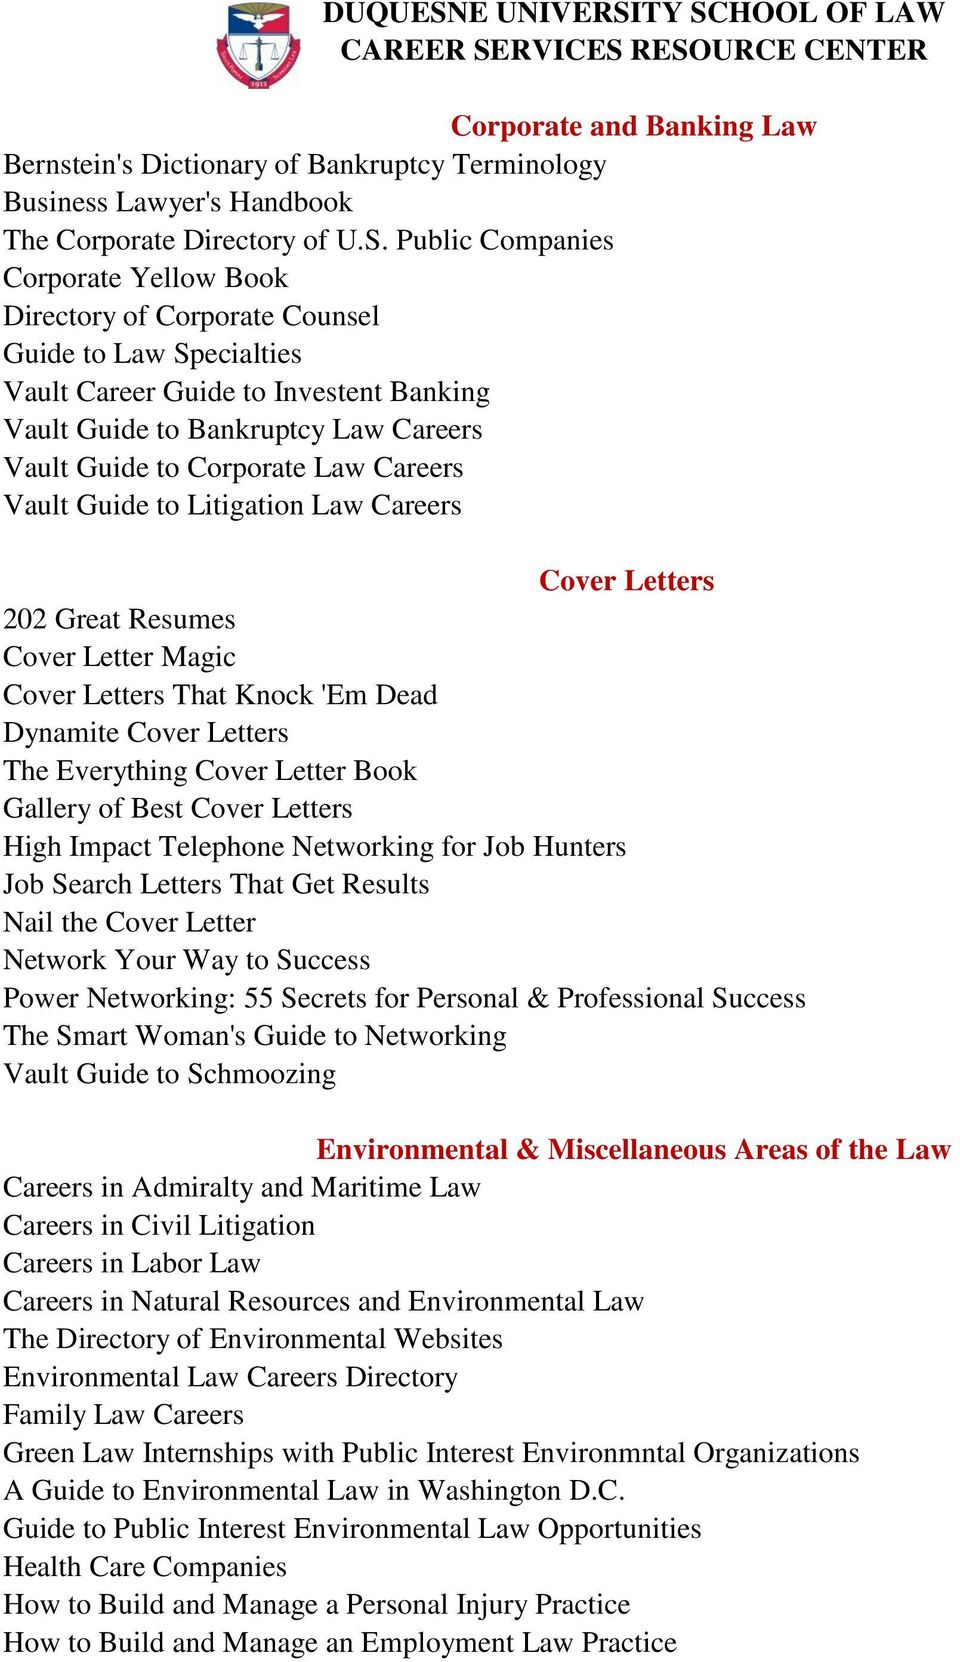 DUQUESNE UNIVERSITY SCHOOL OF LAW CAREER SERVICES RESOURCE ...